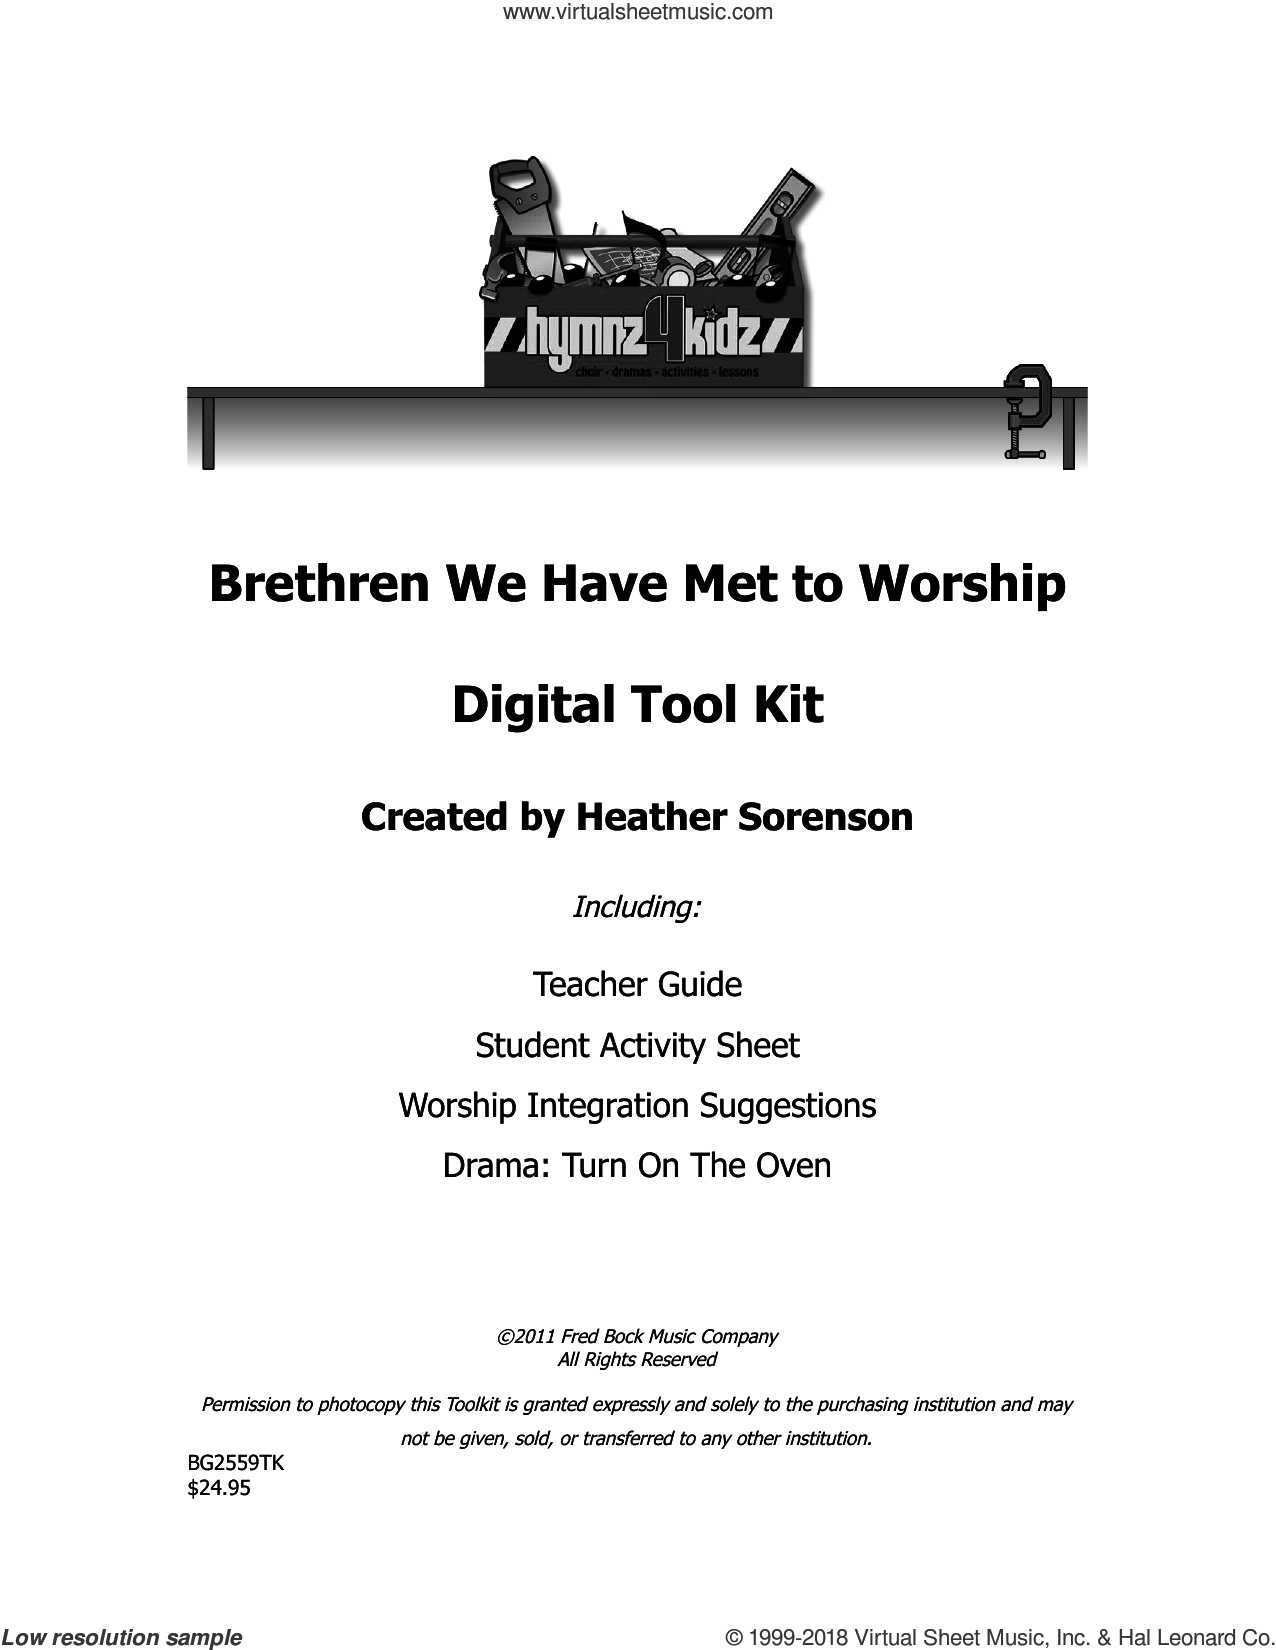 Brethren We Have Met To Worship sheet music for choir (choral tool kit) by William Moore and Heather Sorenson. Score Image Preview.